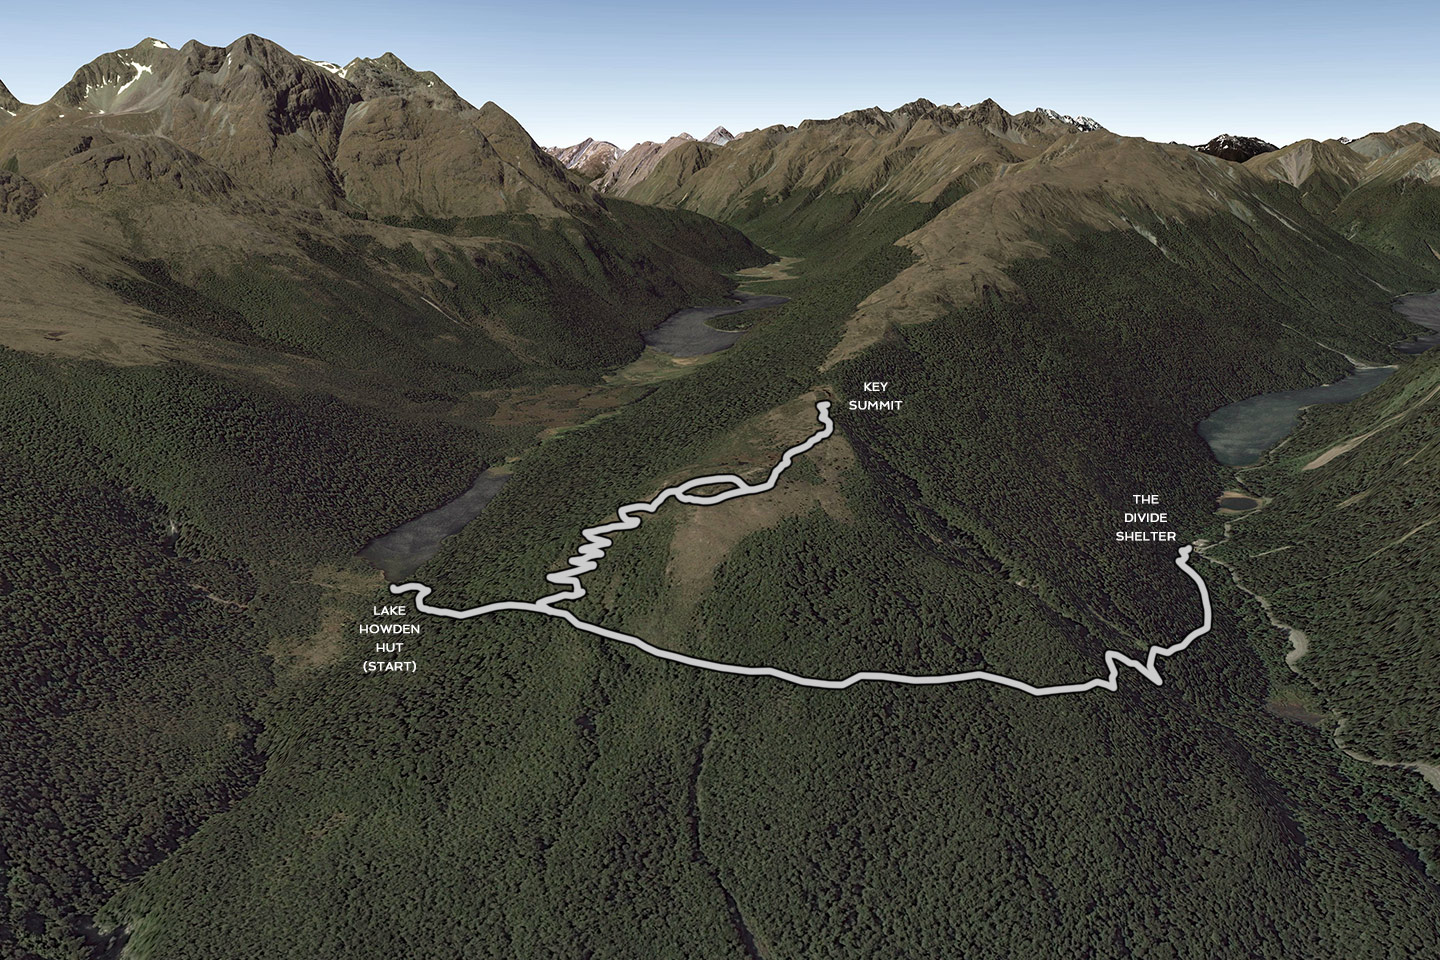 Routeburn Track, Mount Aspiring National Park and Fiordland National Park, New Zealand